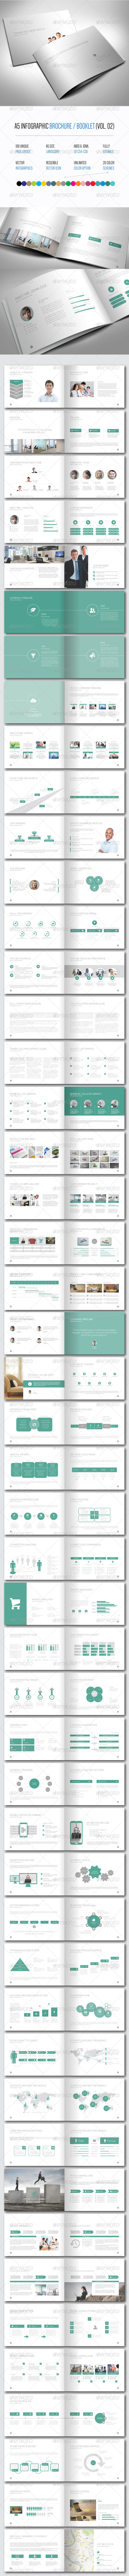 Infographic Brochure / Booklet (Vol. 02) - Corporate Brochures